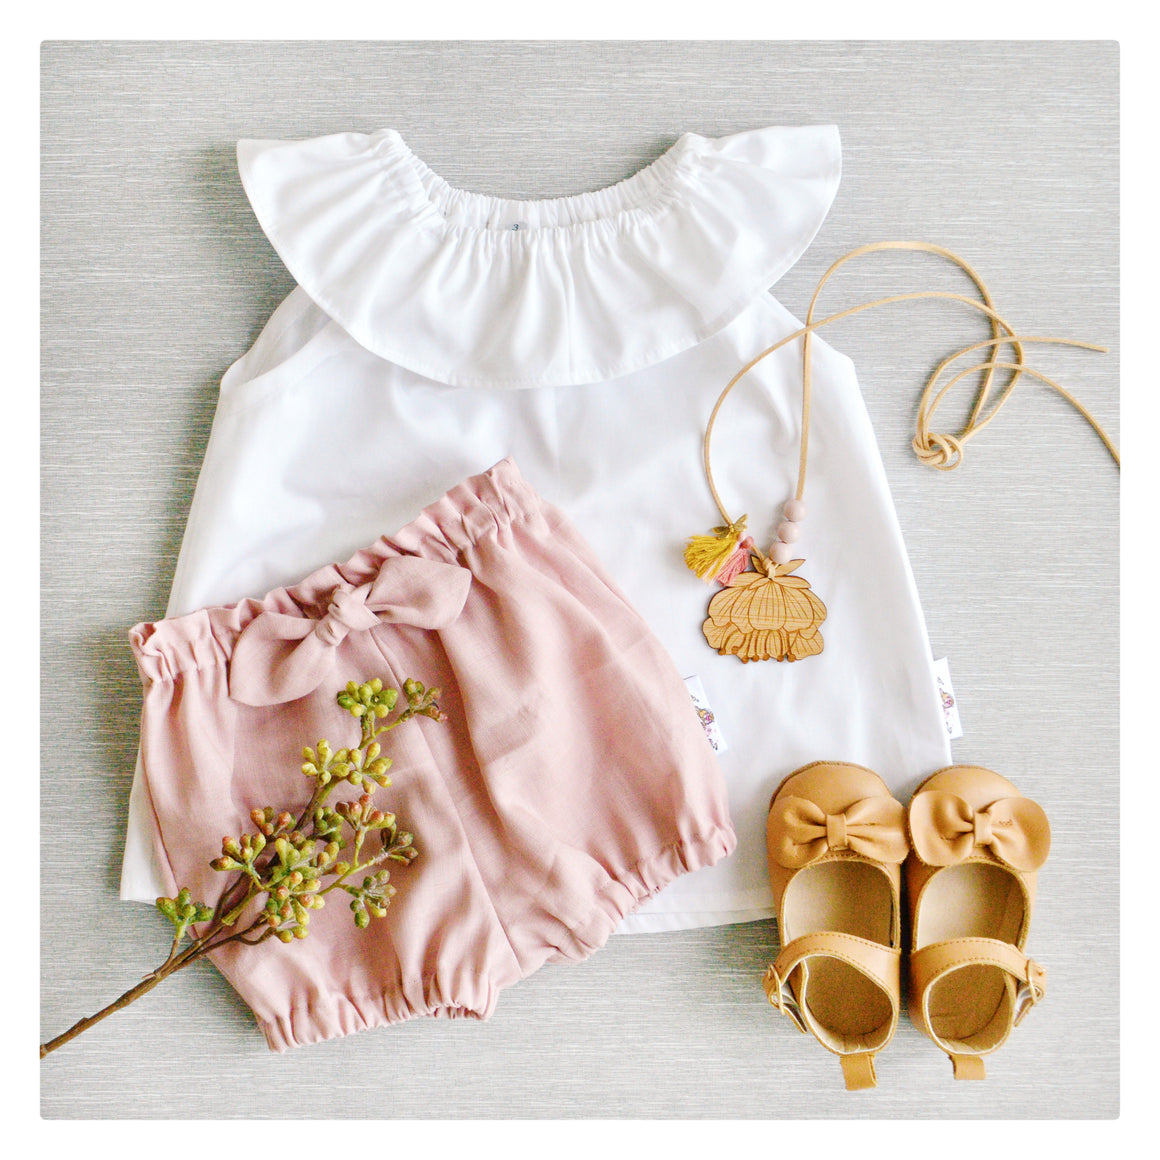 White Ruffle Blouse + Bowknot Blush Shorties {THE COMPLETE OUTFIT}